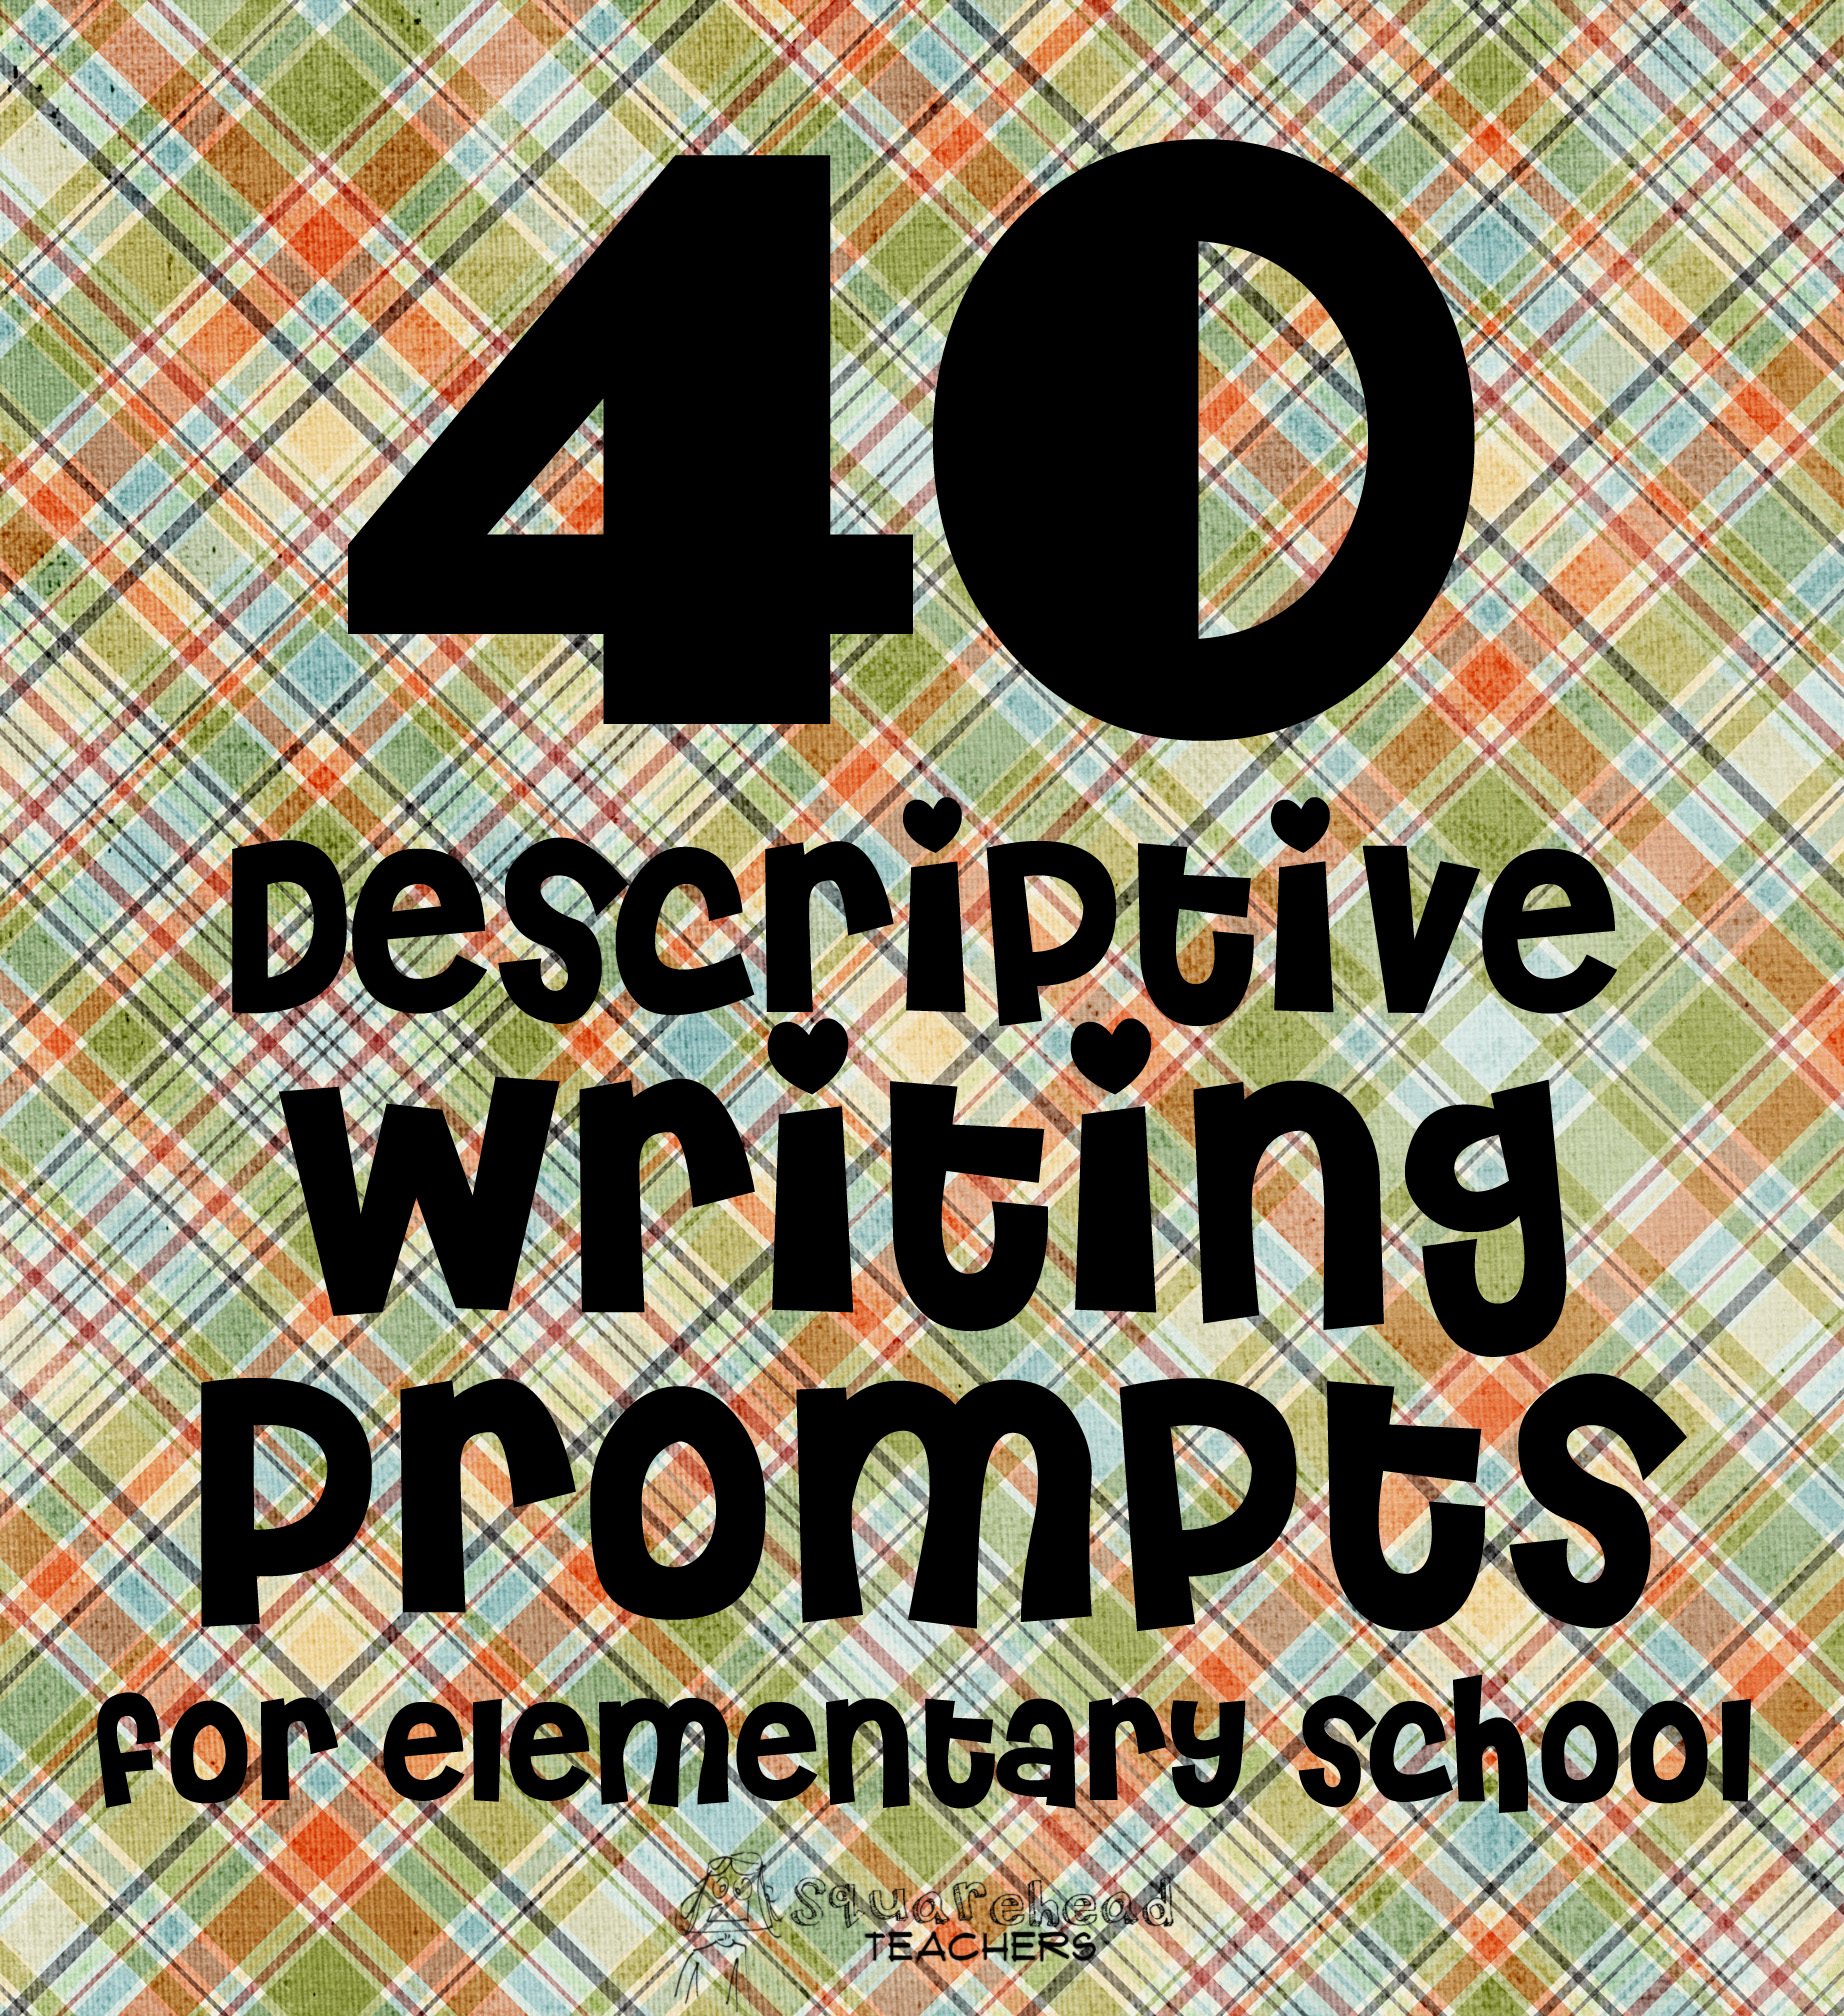 hight resolution of 40 Descriptive Writing Prompts for Elementary School   Squarehead Teachers